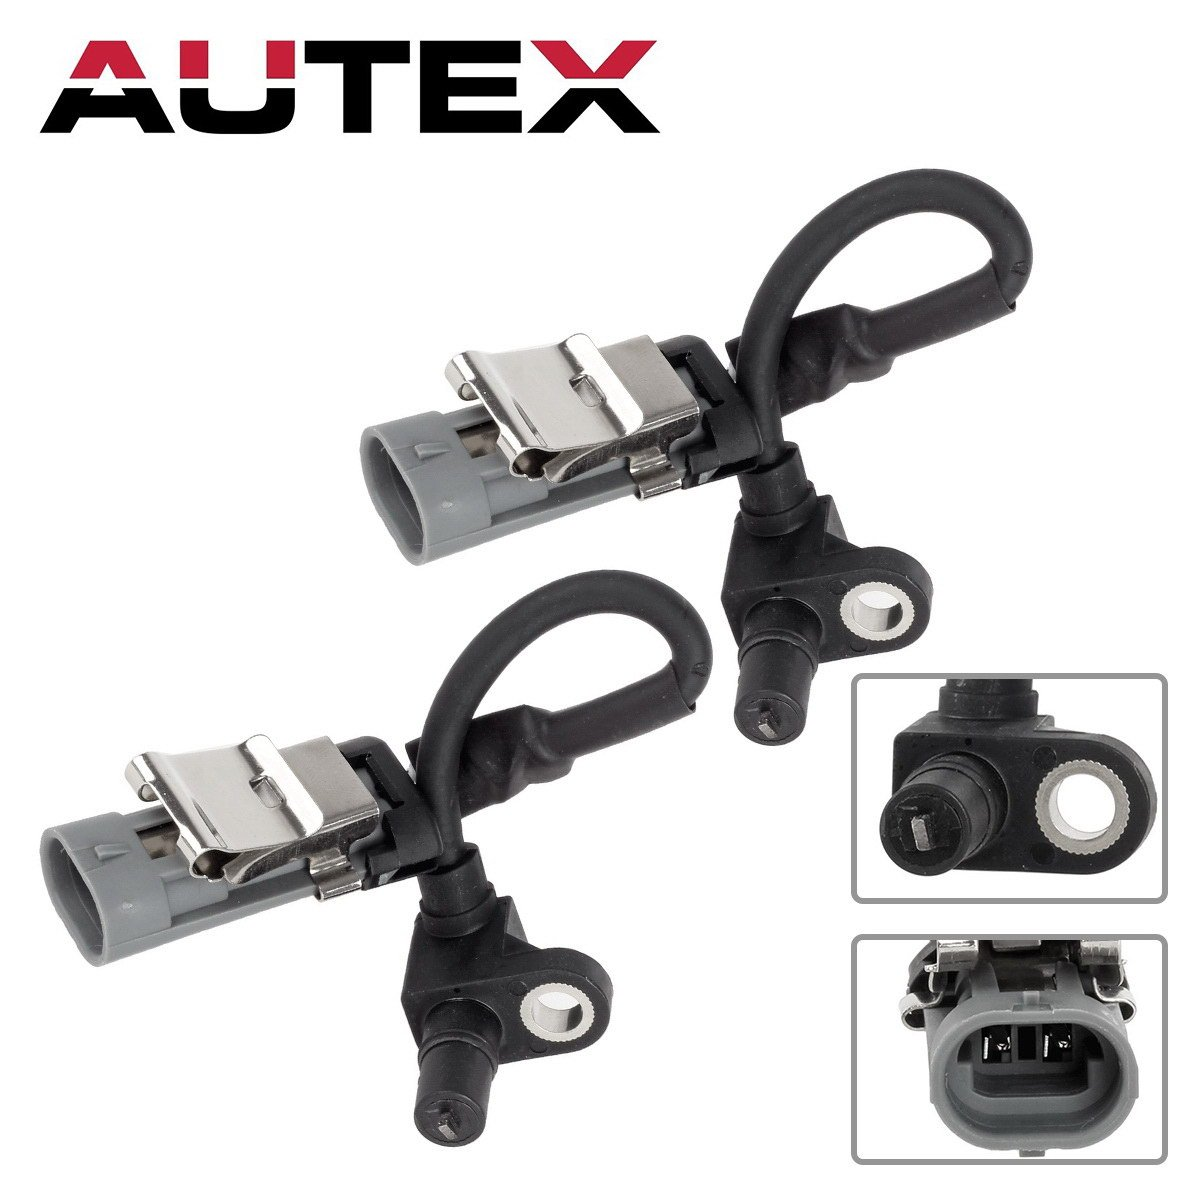 AUTEX 2pcs ABS Wheel Speed Sensor Front left & Right ALS1344 5S4881 compatible with Chevrolet Equinox 3.4L 2005 2006 Pontiac Torrent 3.4L 2006 Saturn Vue ...